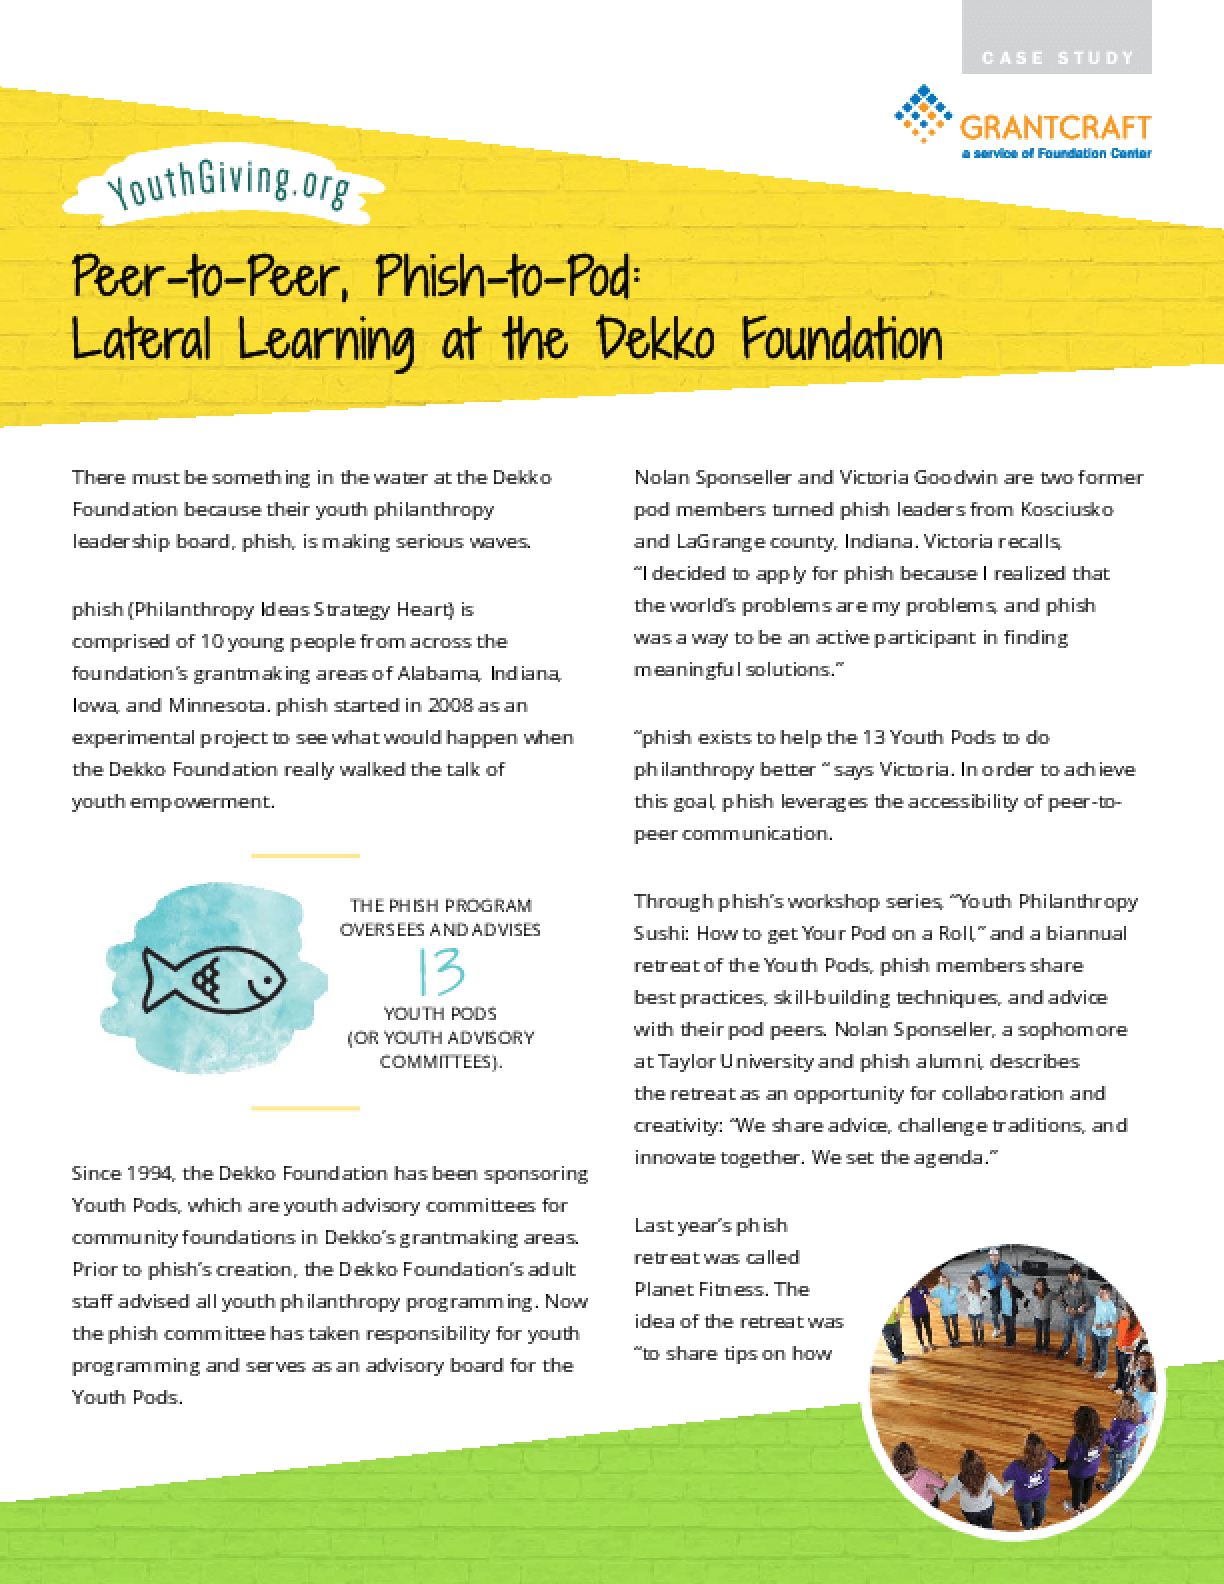 Peer-to-Peer, Phish-to-Pod: Lateral Learning at the Dekko Foundation